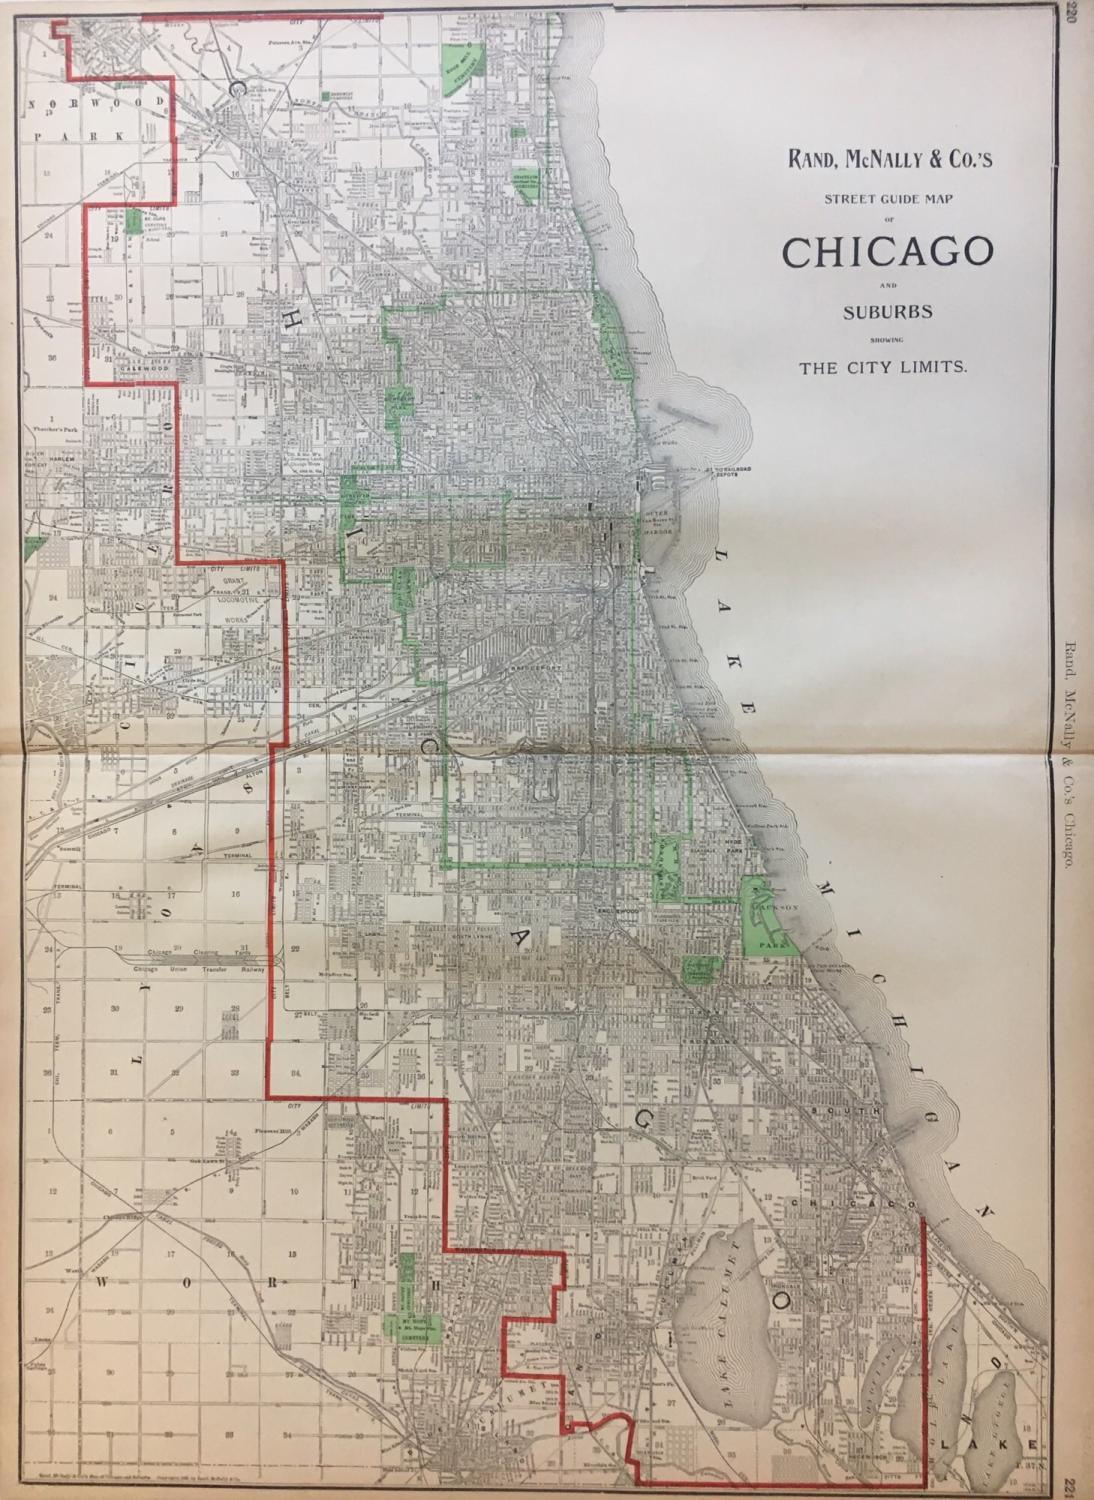 Street Guide Map of Chicago and Suburbs ... on cook county map, chicago county map, great lakes megalopolis, chicago regions map, west suburban map, metro detroit, dallas/fort worth metroplex, lake county, chicago loop, chicago area map, dekalb county, atlanta metropolitan area, chicago pollution map, chicago restaurants map, cook county, dupage county map, delaware valley, chicago illinois, chicago construction map, chicago crime map, lake county map, naperville map, chicago inner city map, will county, chicago loop map, new york metropolitan area, dupage county, chicagoland map, oak park, chicago church map, aurora map, illinois map, chicago economy map, greater houston,